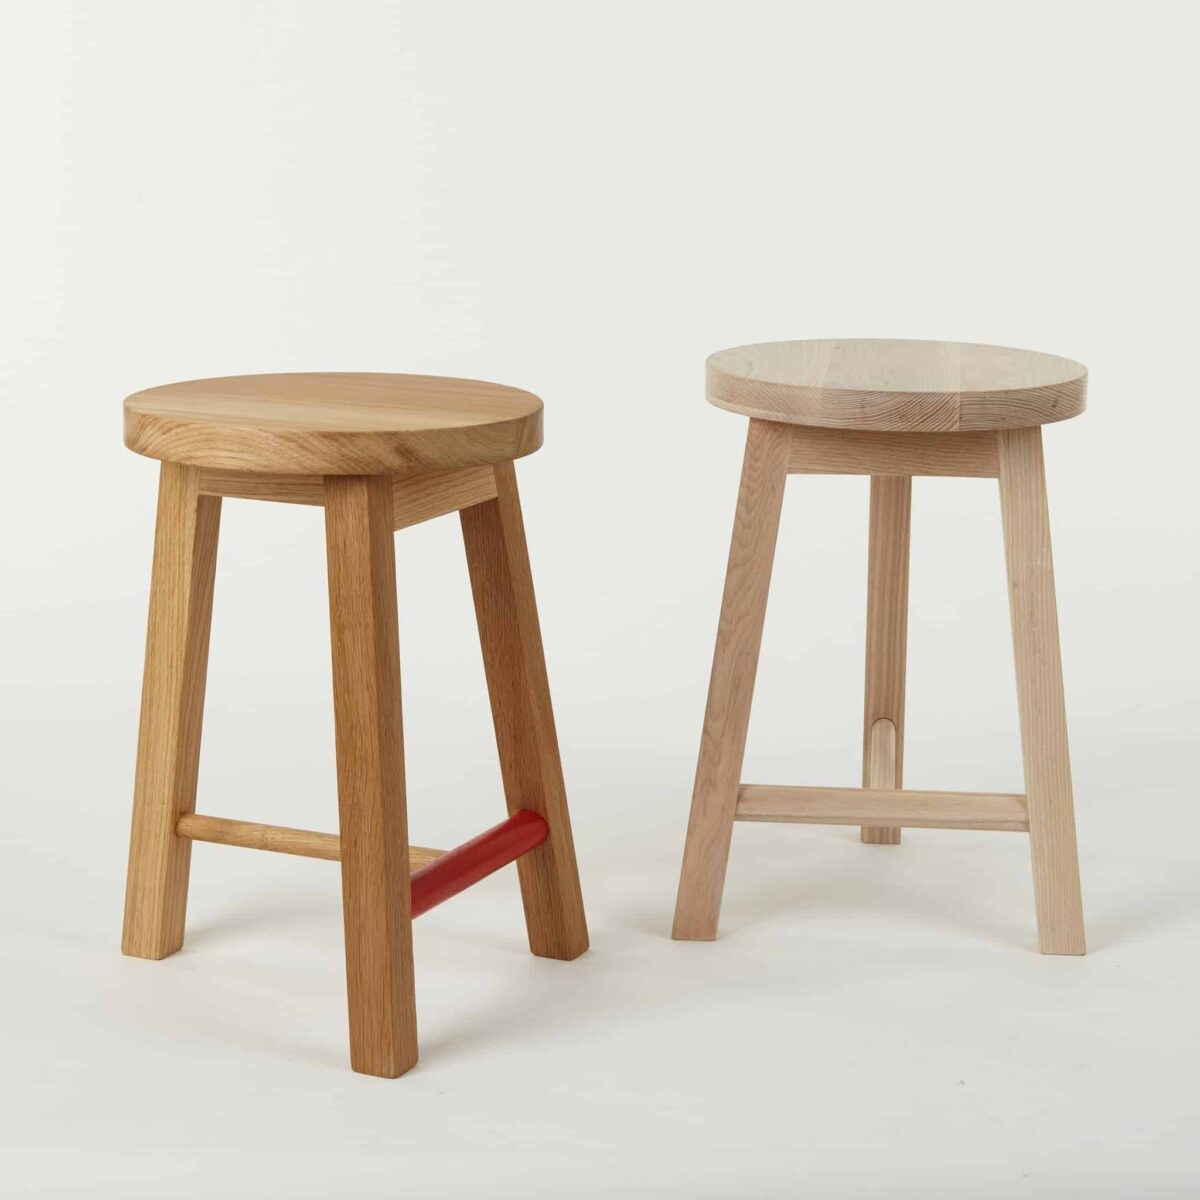 series-two-stool-round-oak-another-country-003